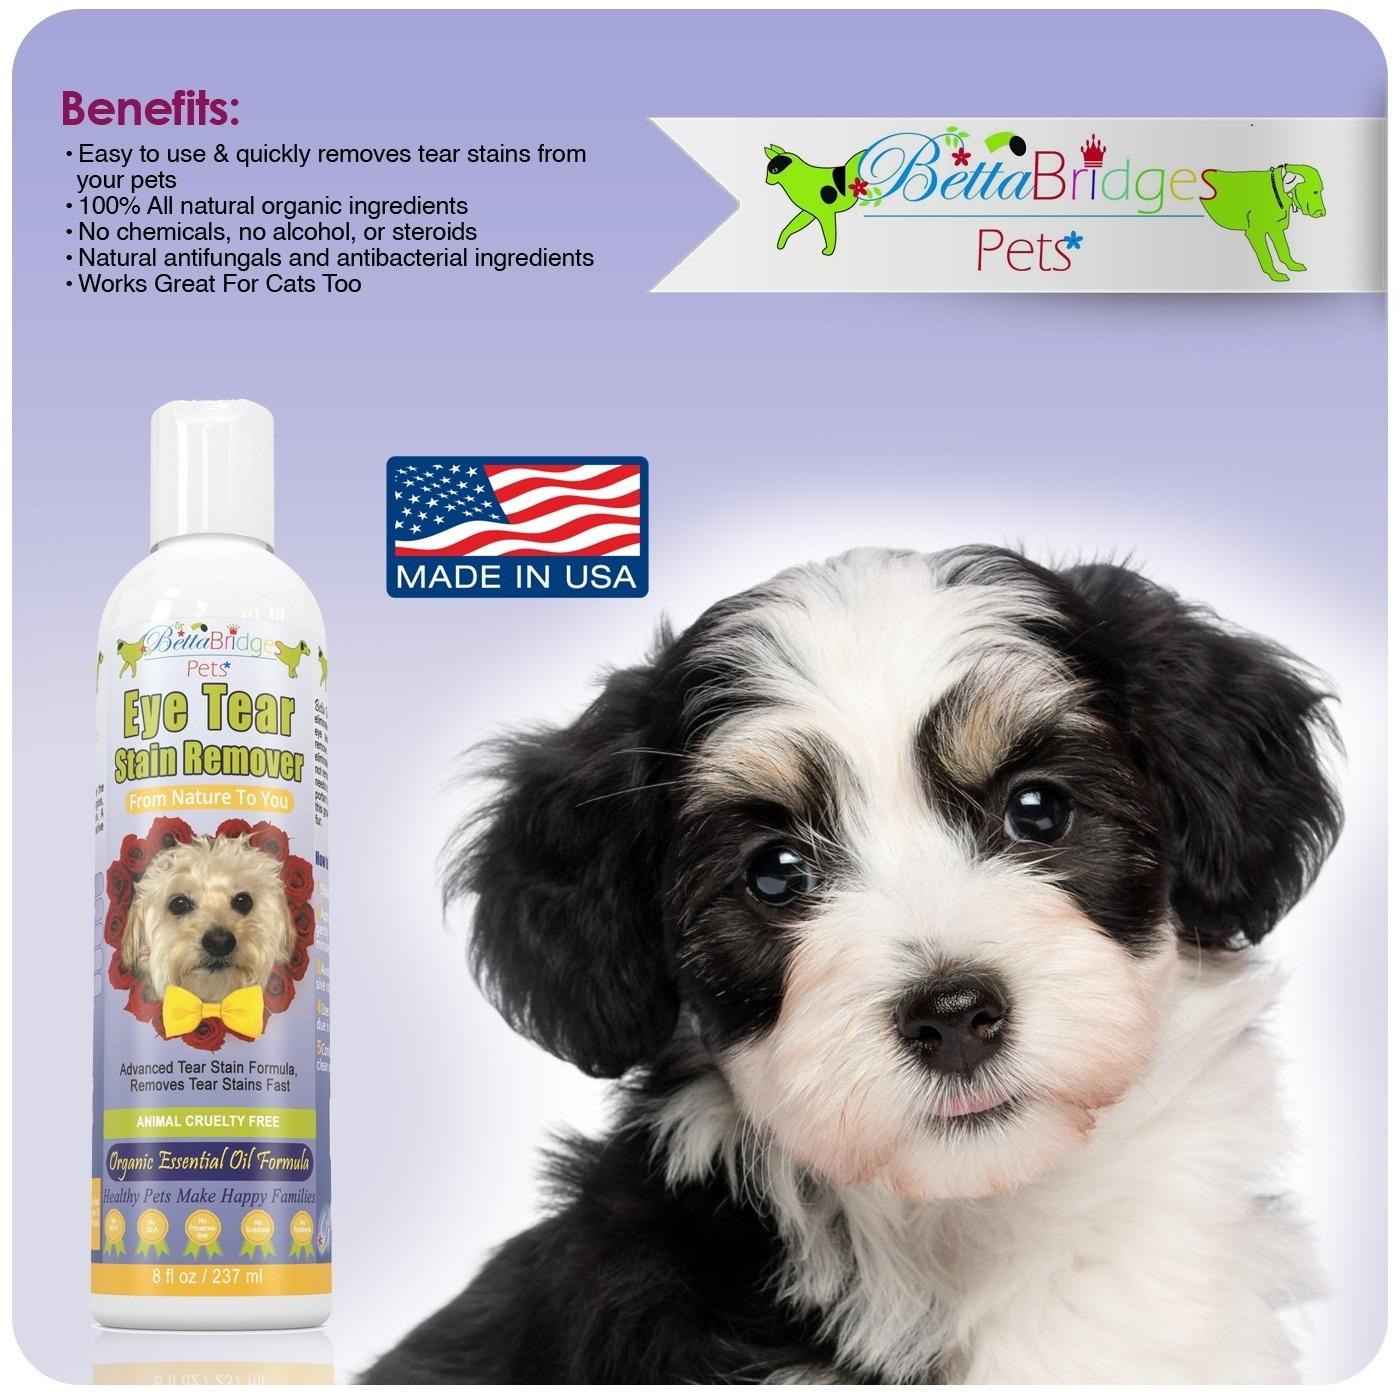 Which Angel Eyes Product For Dogs Works The Best